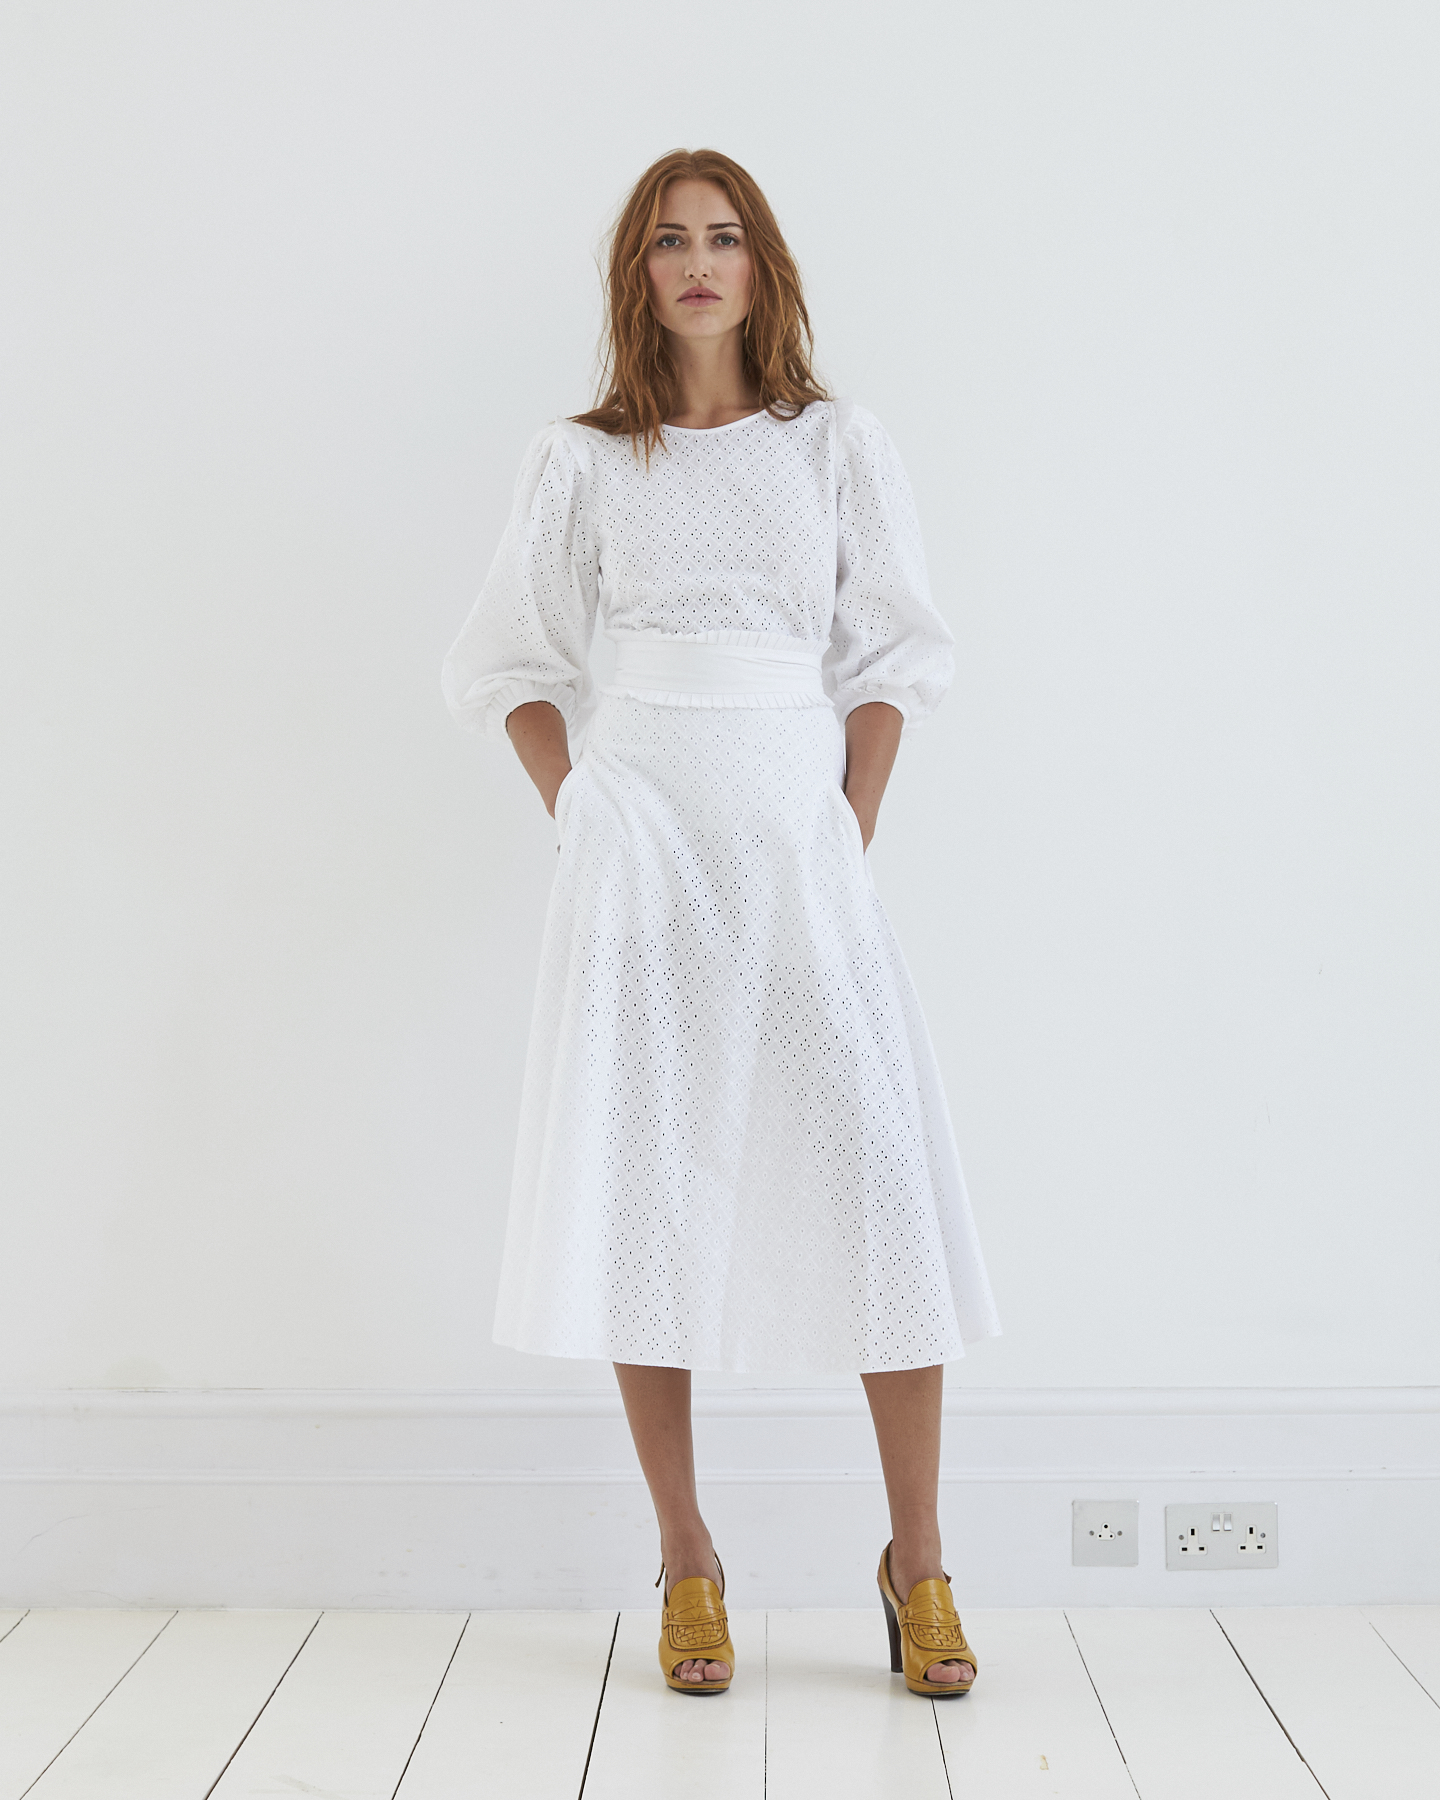 Birdie Broderie Anglaise Skirt, Top & Belt. Unlined for subtle sex appeal and incredibly versatile.